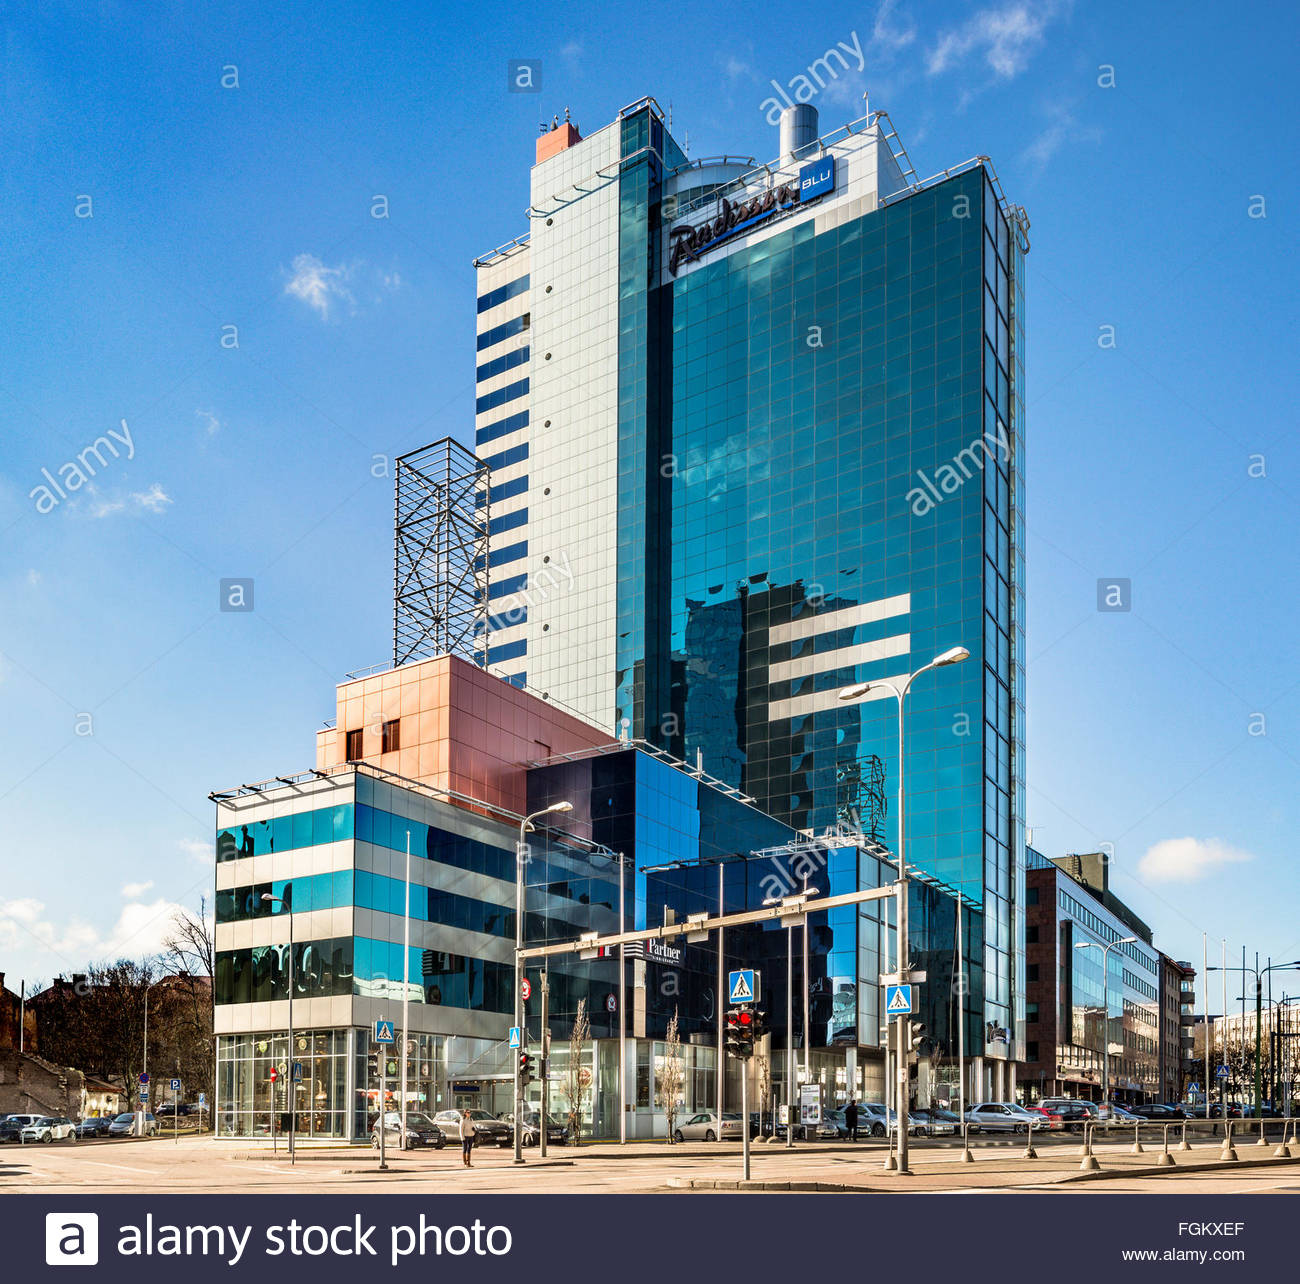 Radisson Blu hotel in Tallinn, Estonia, Künnapu&Padrik architects - Stock Image